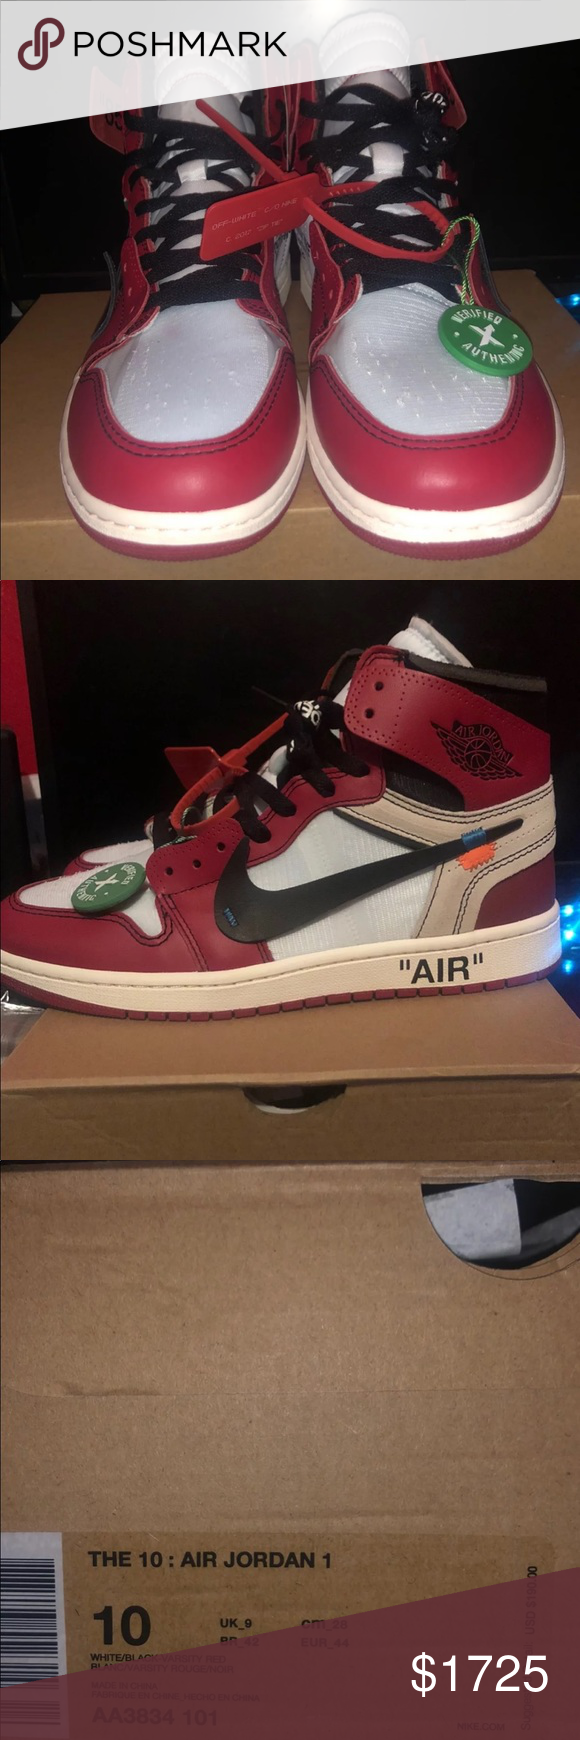 167a4d5b1566 Off White Chicago Air Jordan 1 stockx verified authentic off white chicago  jordan 1 Jordan Shoes Athletic Shoes